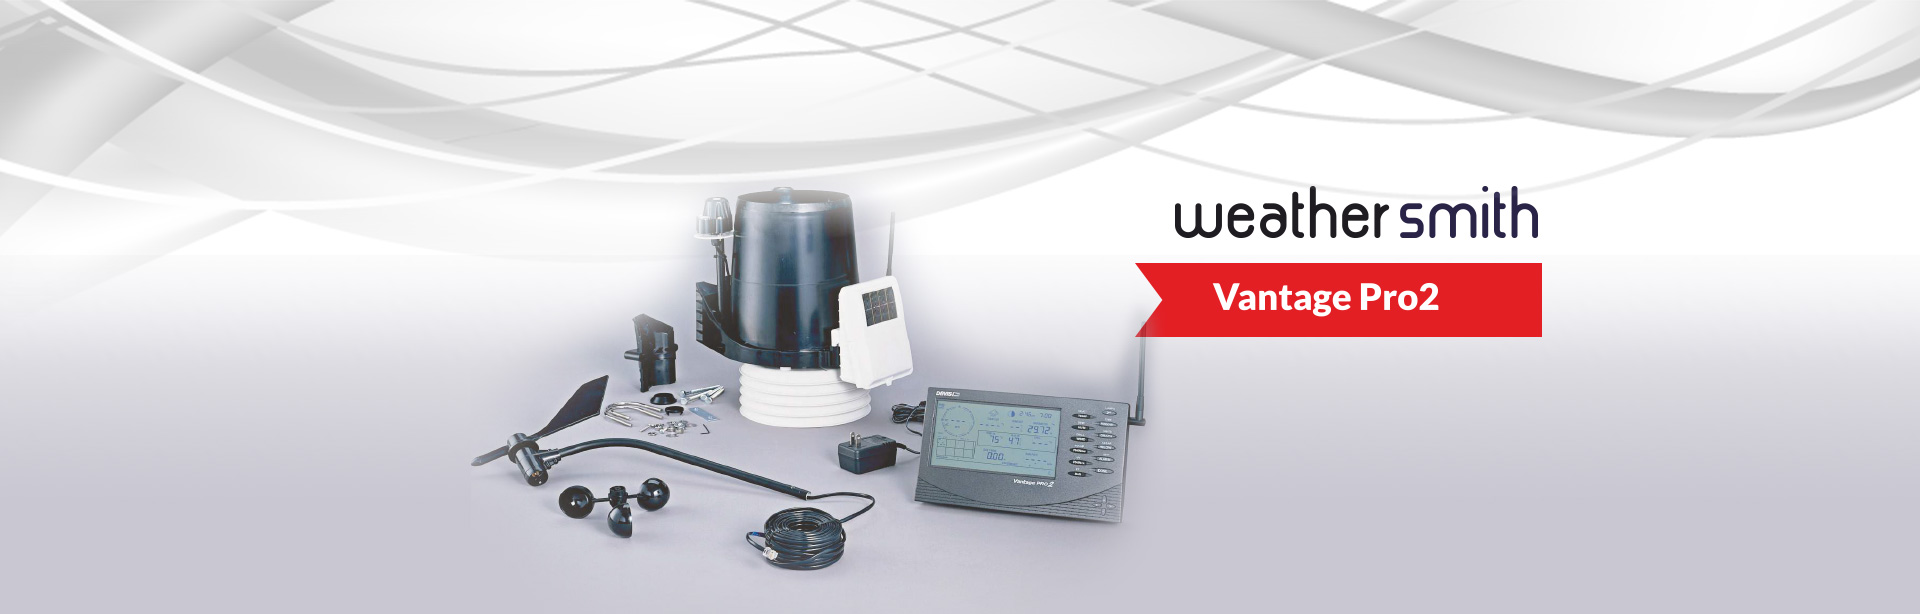 Vantage pro2 weather station is available here.